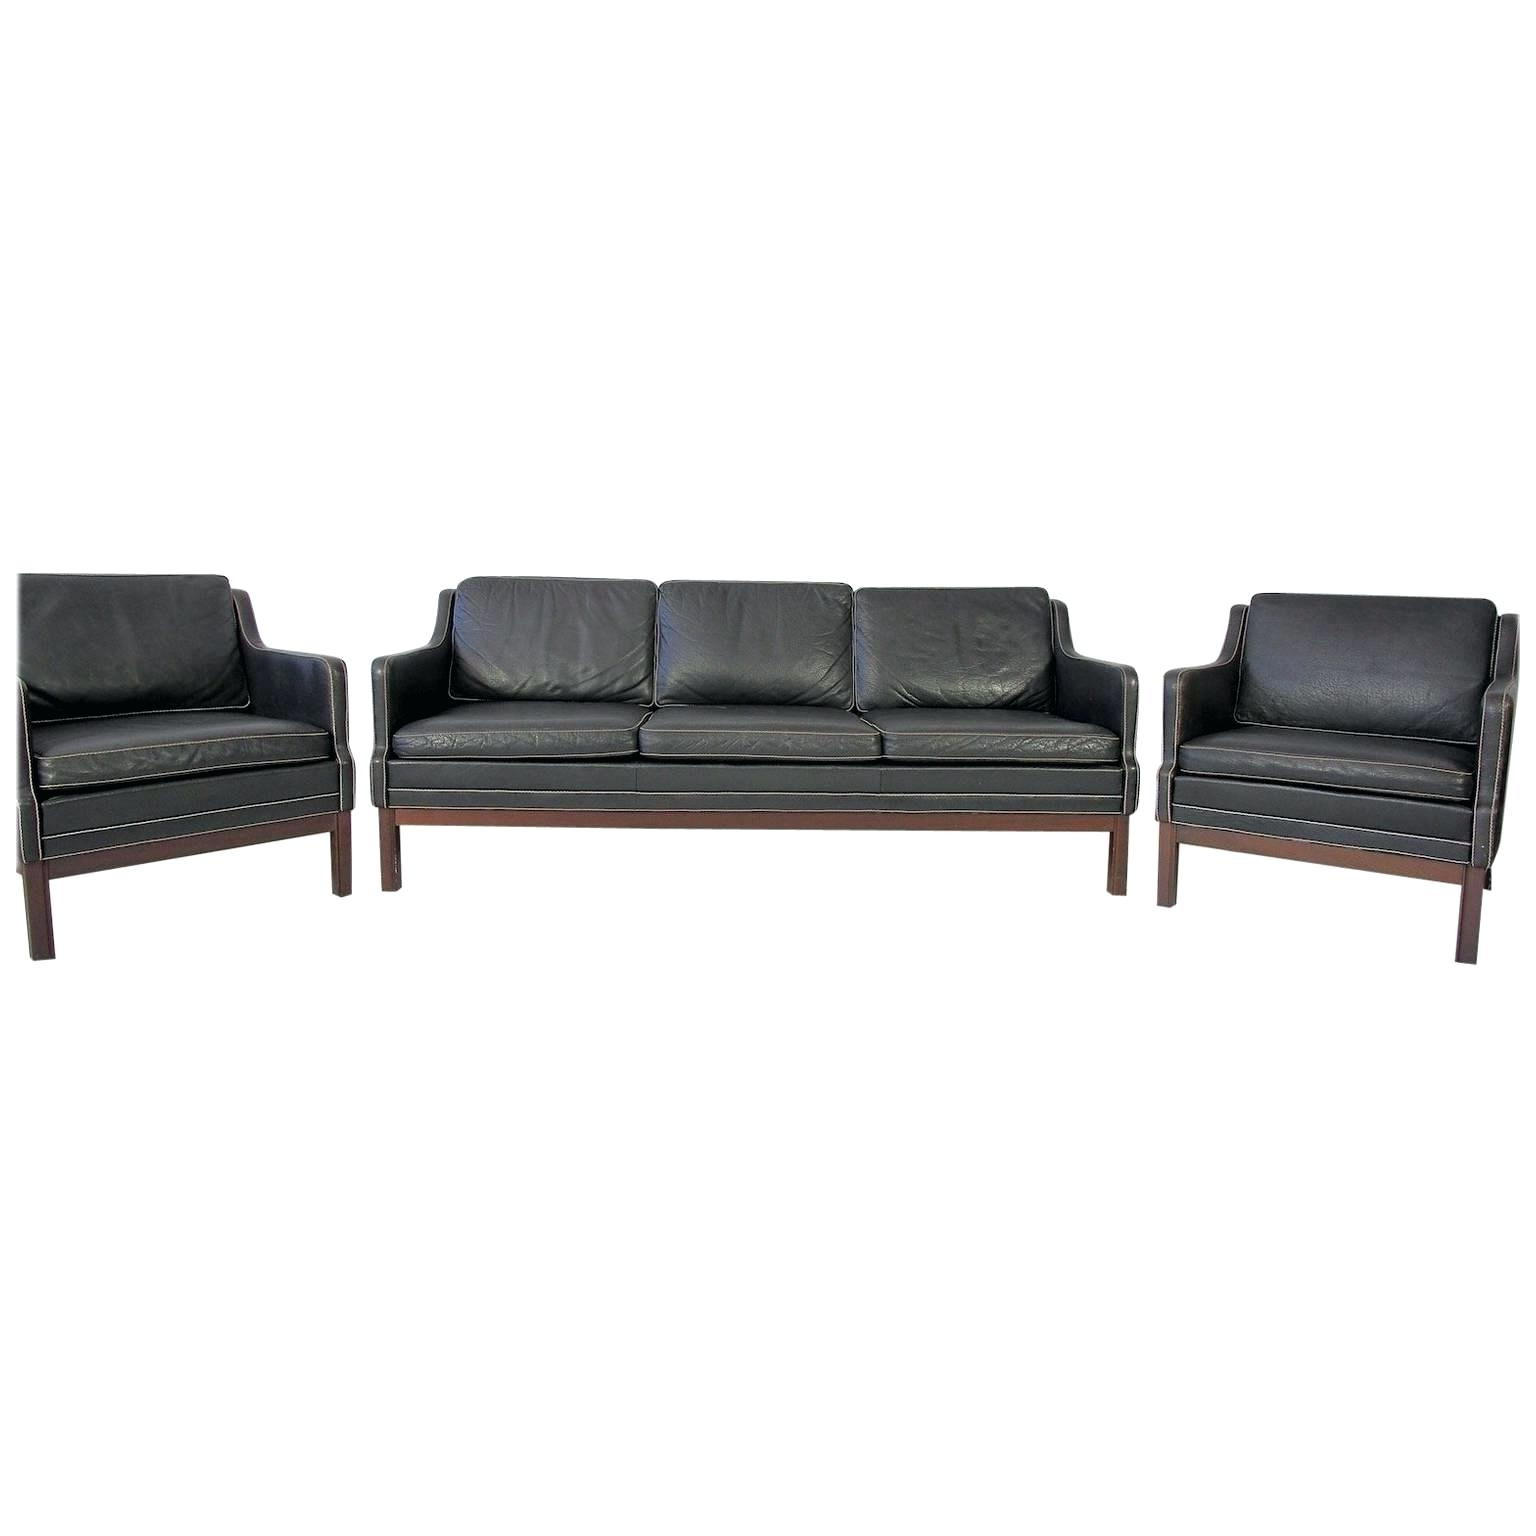 Best And Newest Sectional Sofas At Buffalo Ny In Buffalo Leather Couch Cha Buffalo Leather Sectional – Thedropin (View 5 of 20)